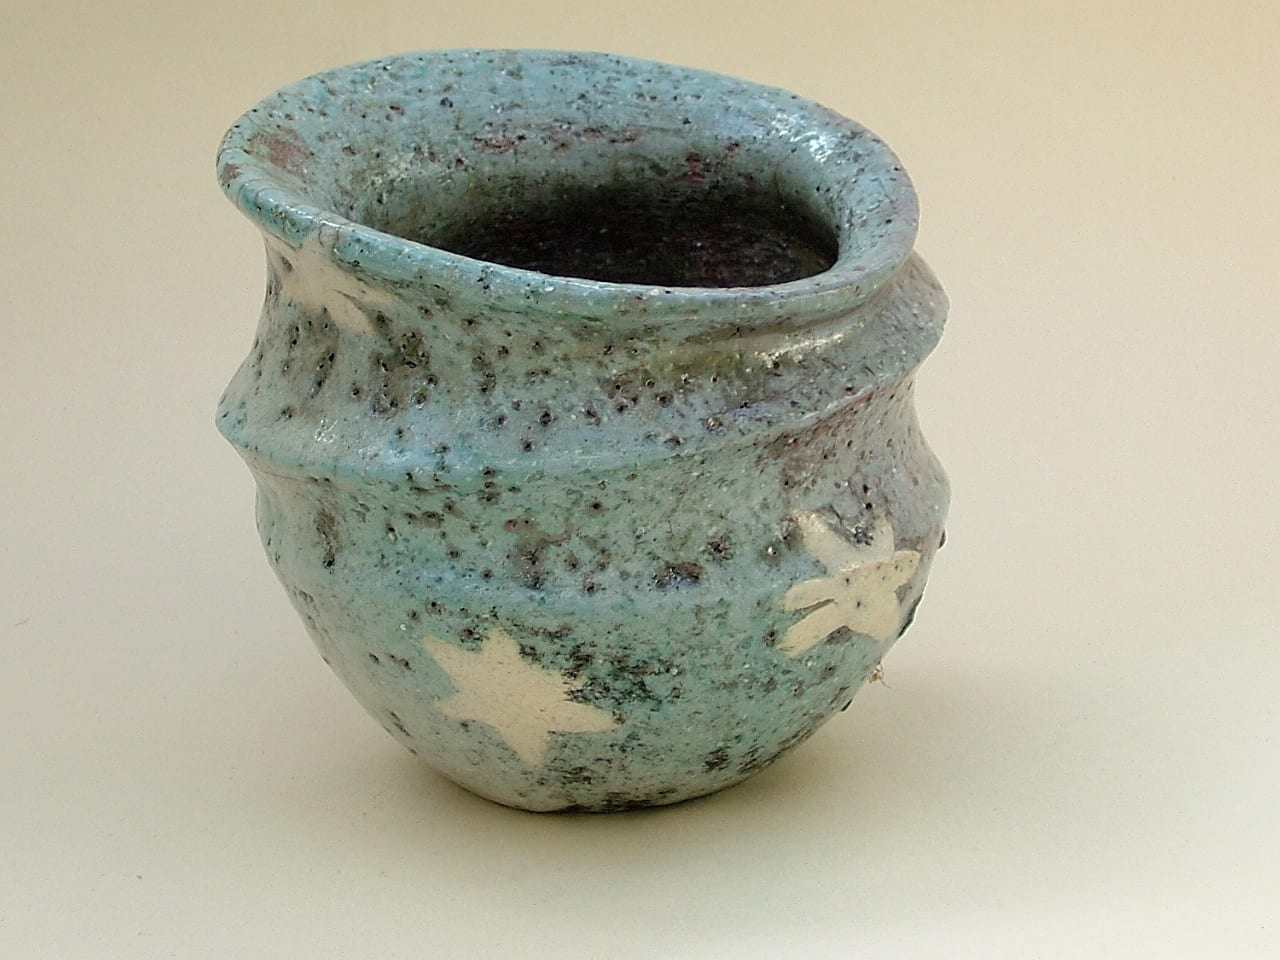 Blue-Starred Carinated Raku